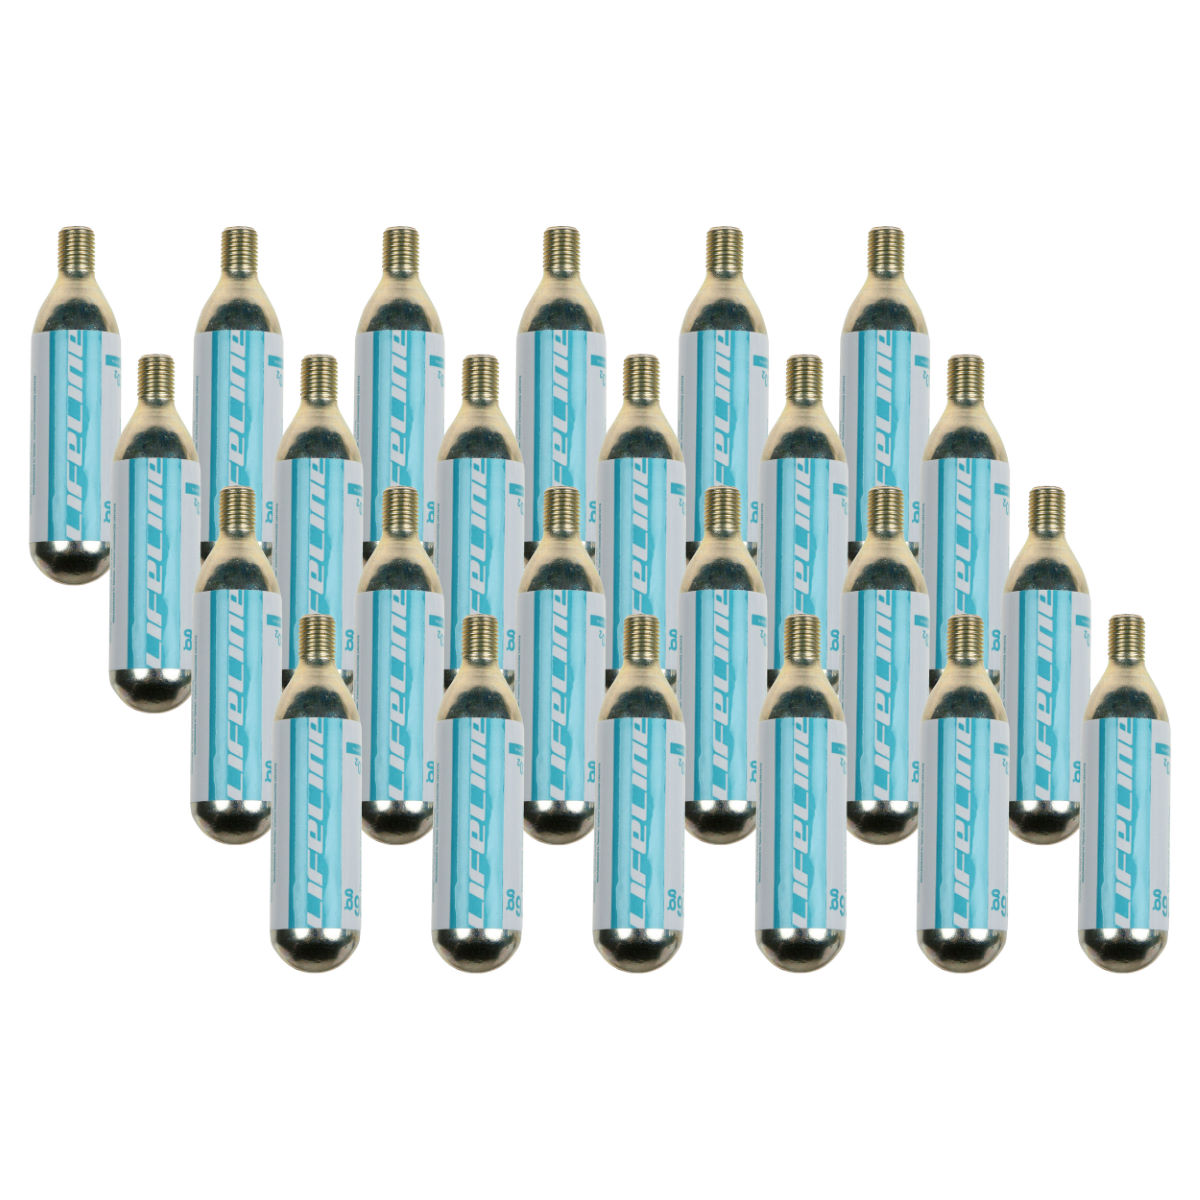 LifeLine 16g CO2 Inflator Cartridges Extra Value 24 Pack